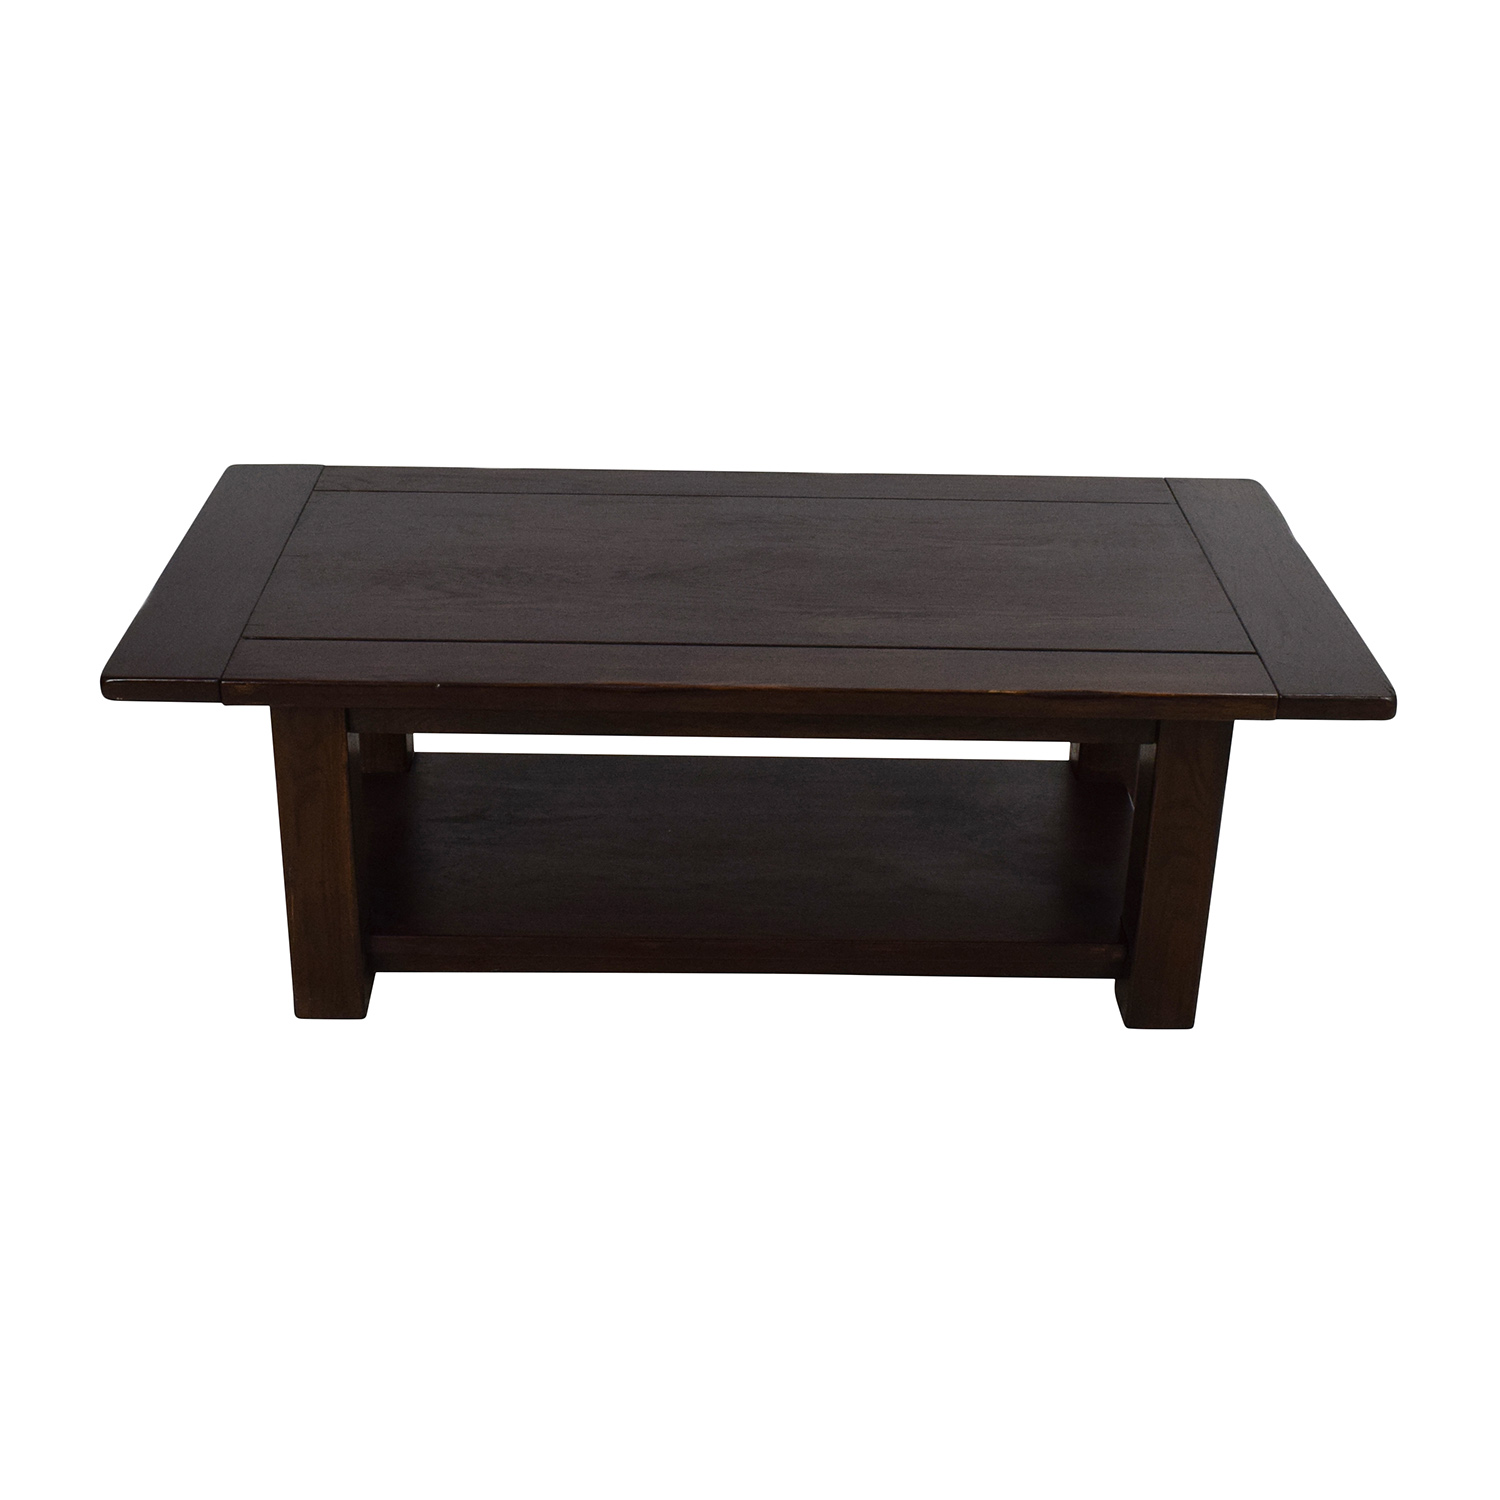 ... West Elm West Elm Wooden Coffee Table ...